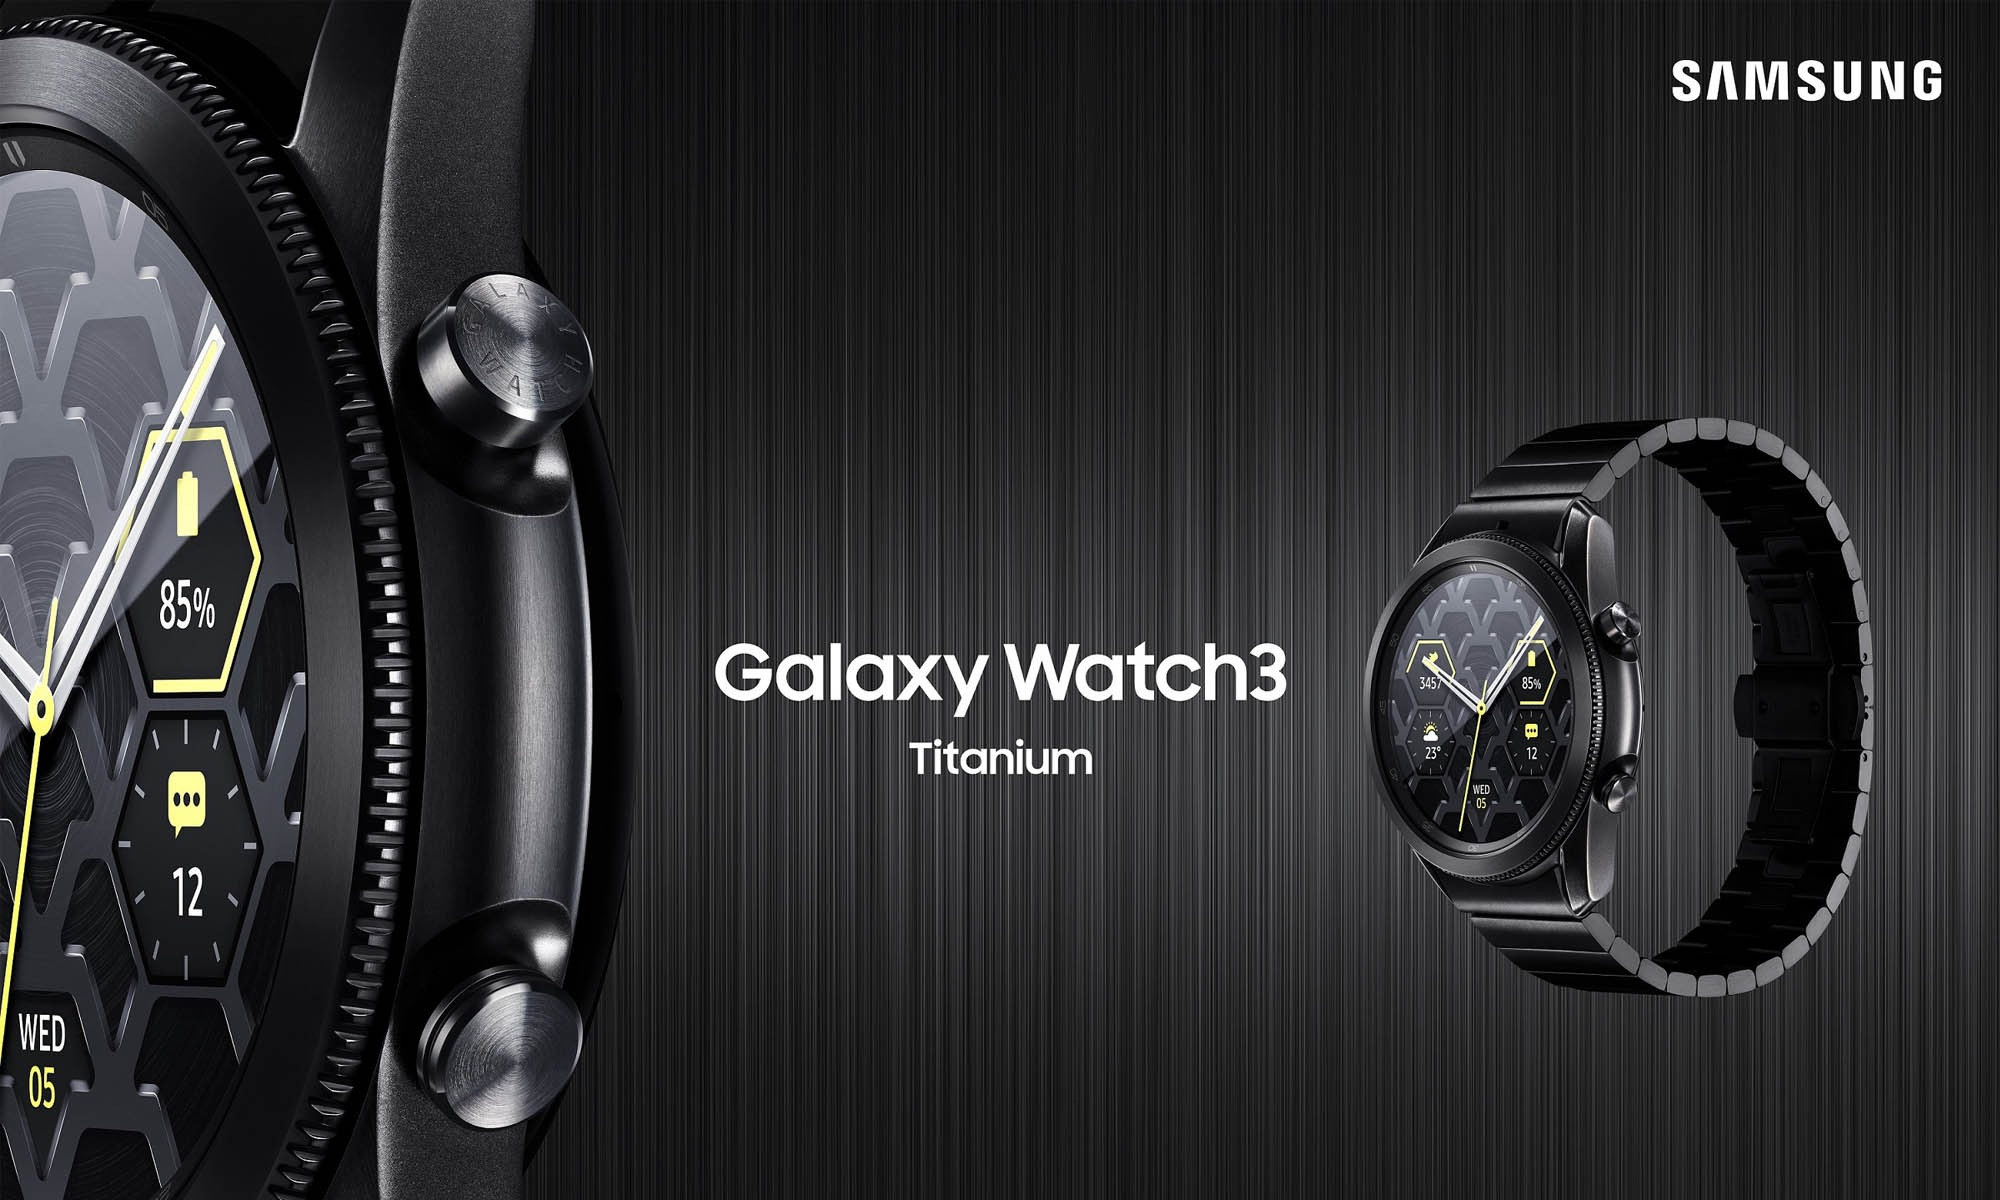 Fancy a smartwatch built for durability from the ground up? Then the  Samsung Galaxy Watch3 Titanium will surely catch your eyes in a new  distinguished design.